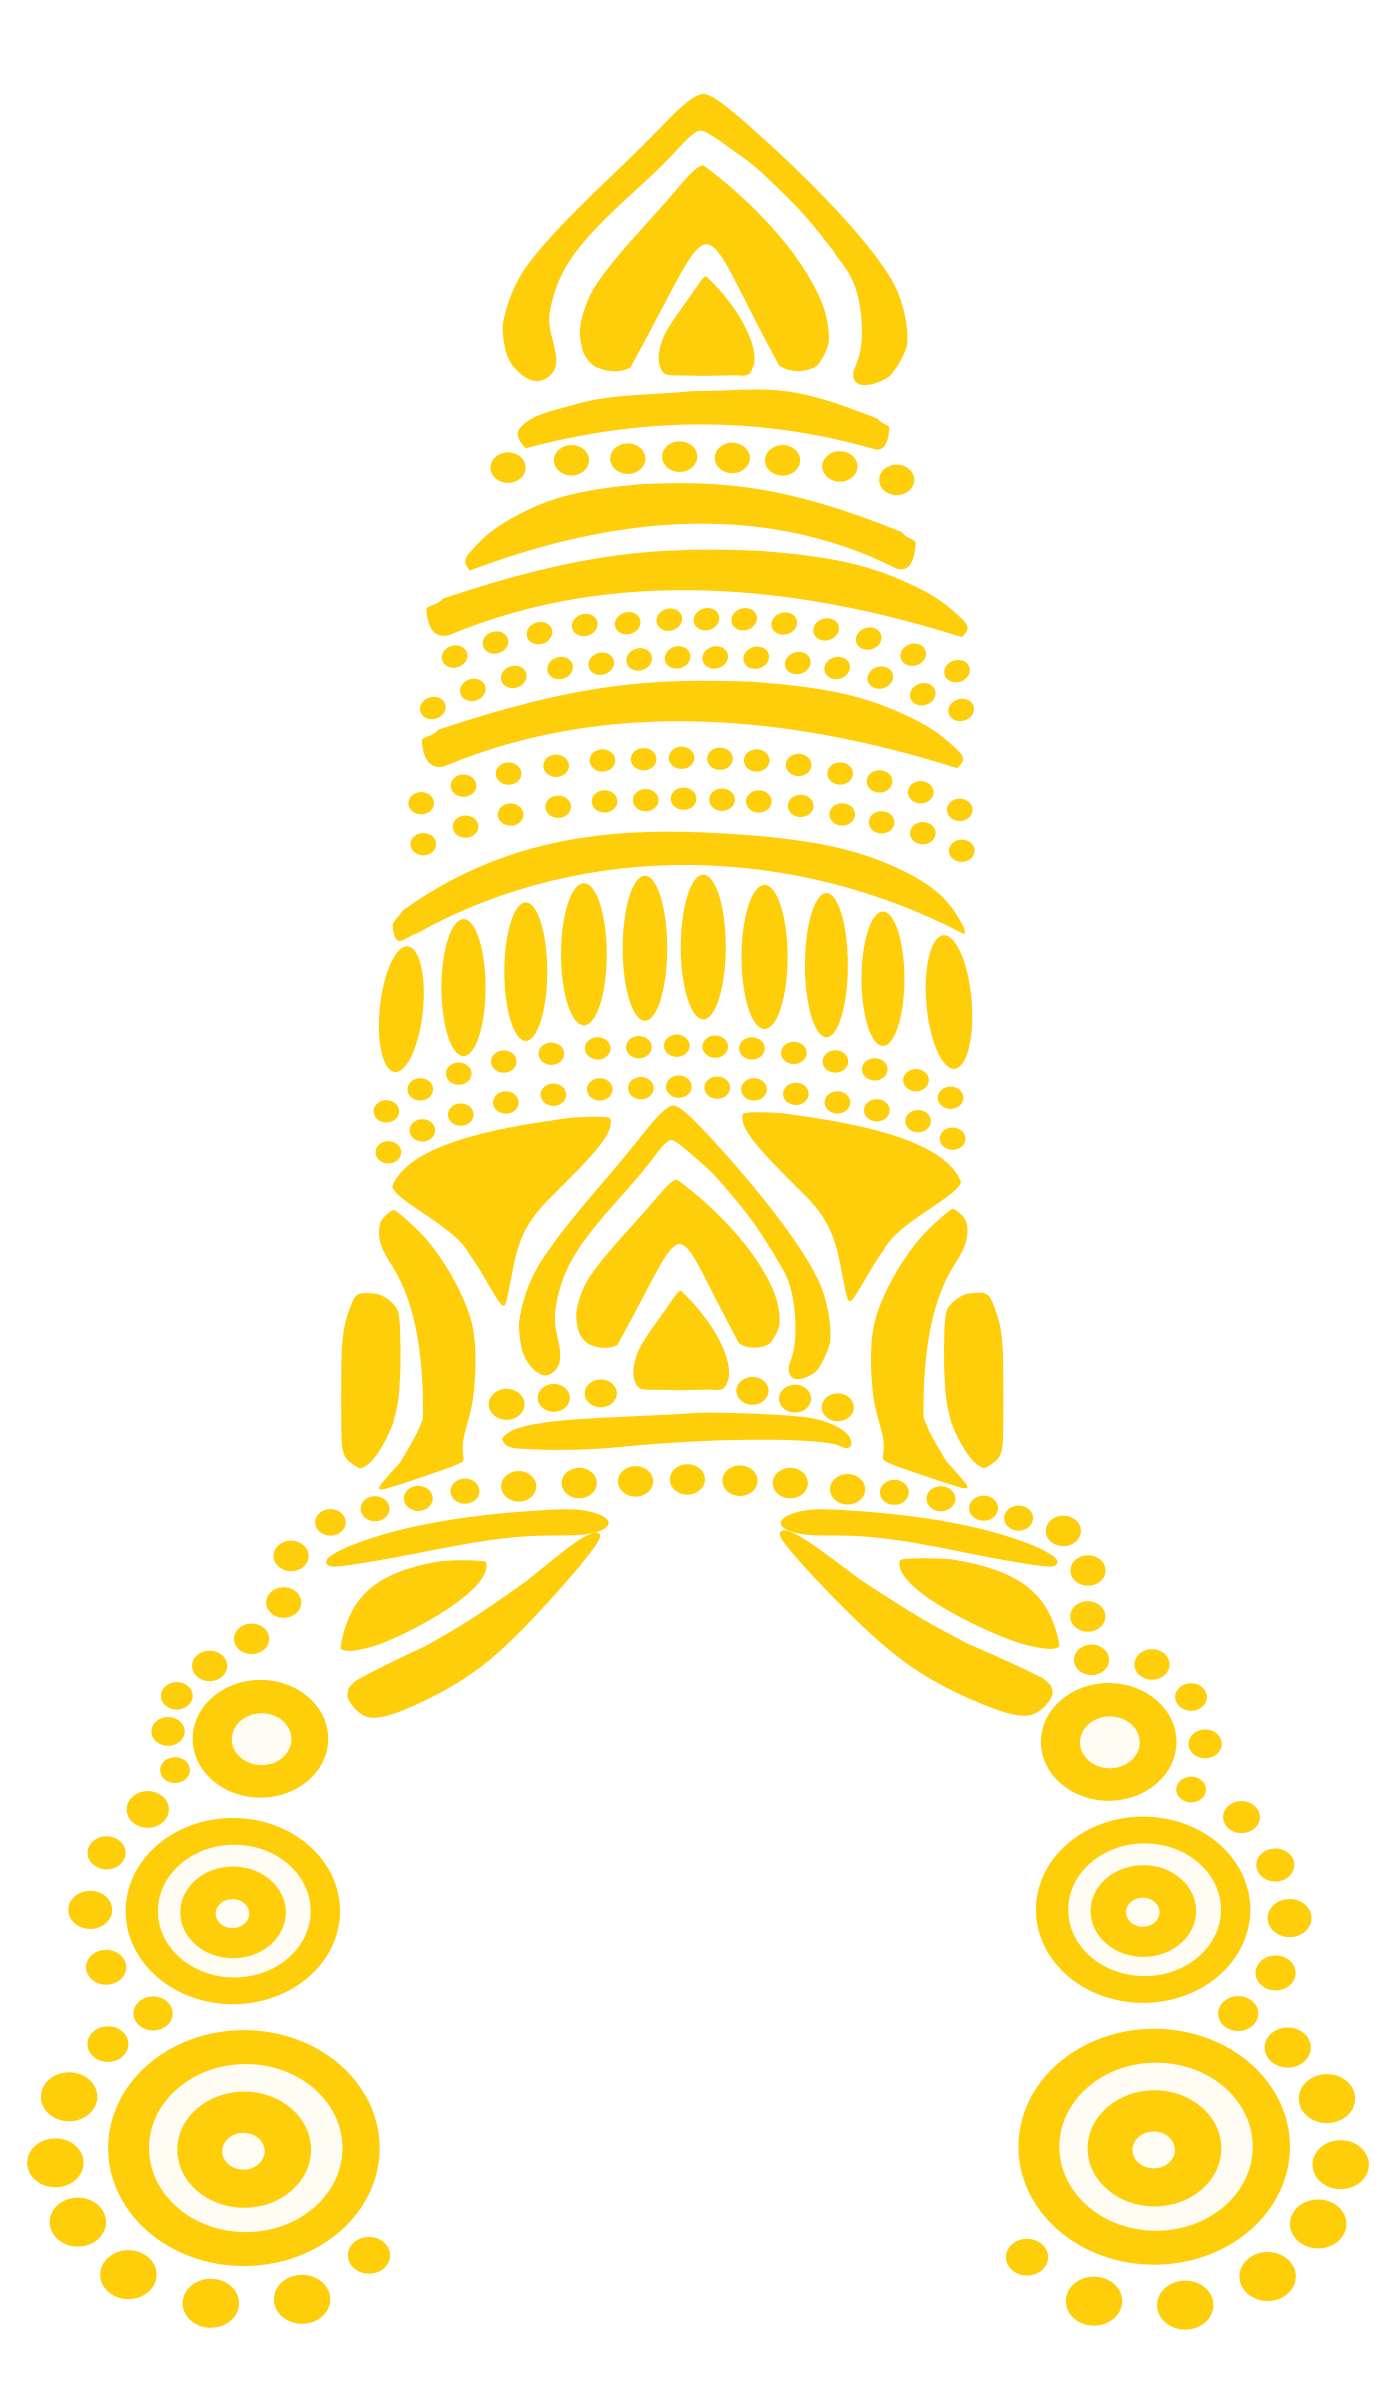 Vishnu Crown by Bharateey